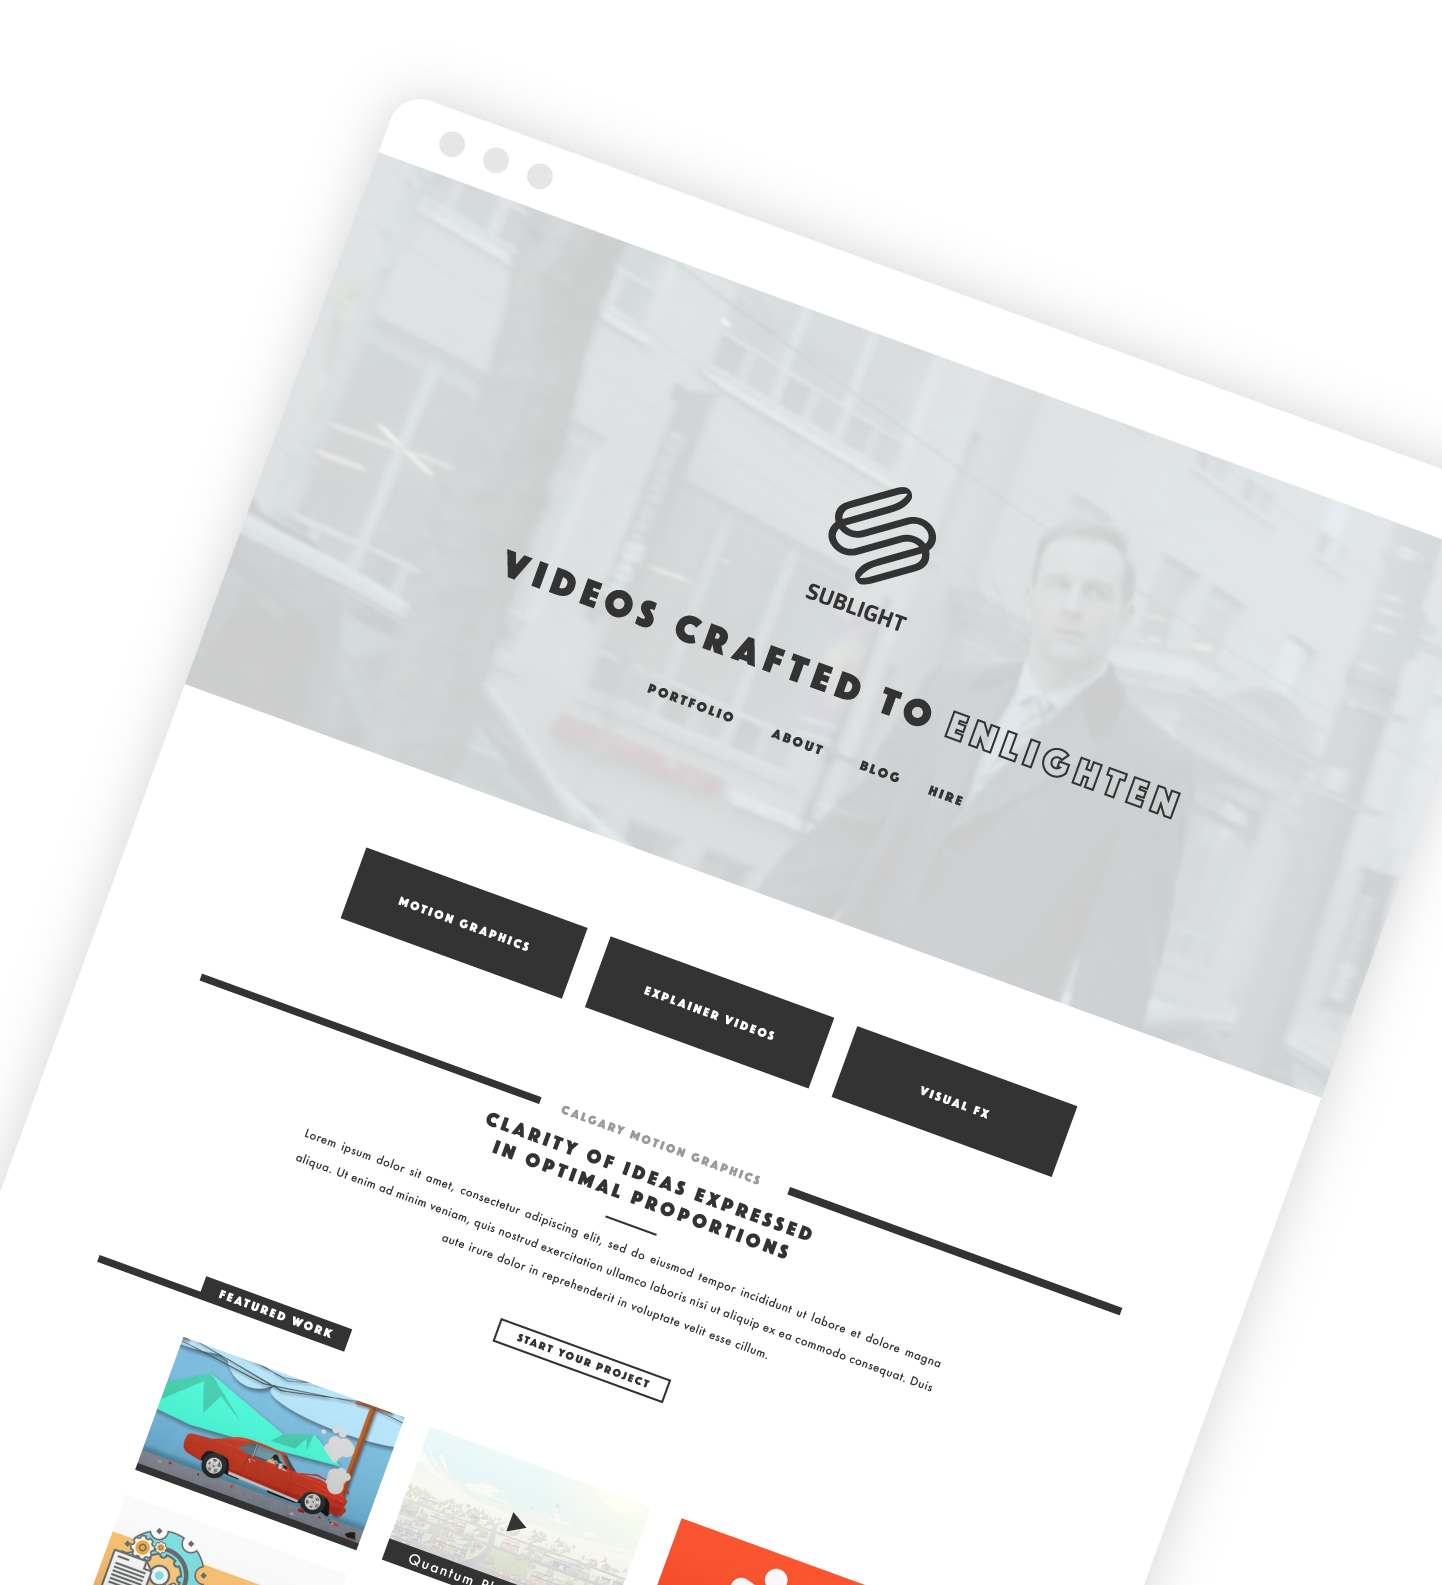 Freelance Web Design - Sublight Studio